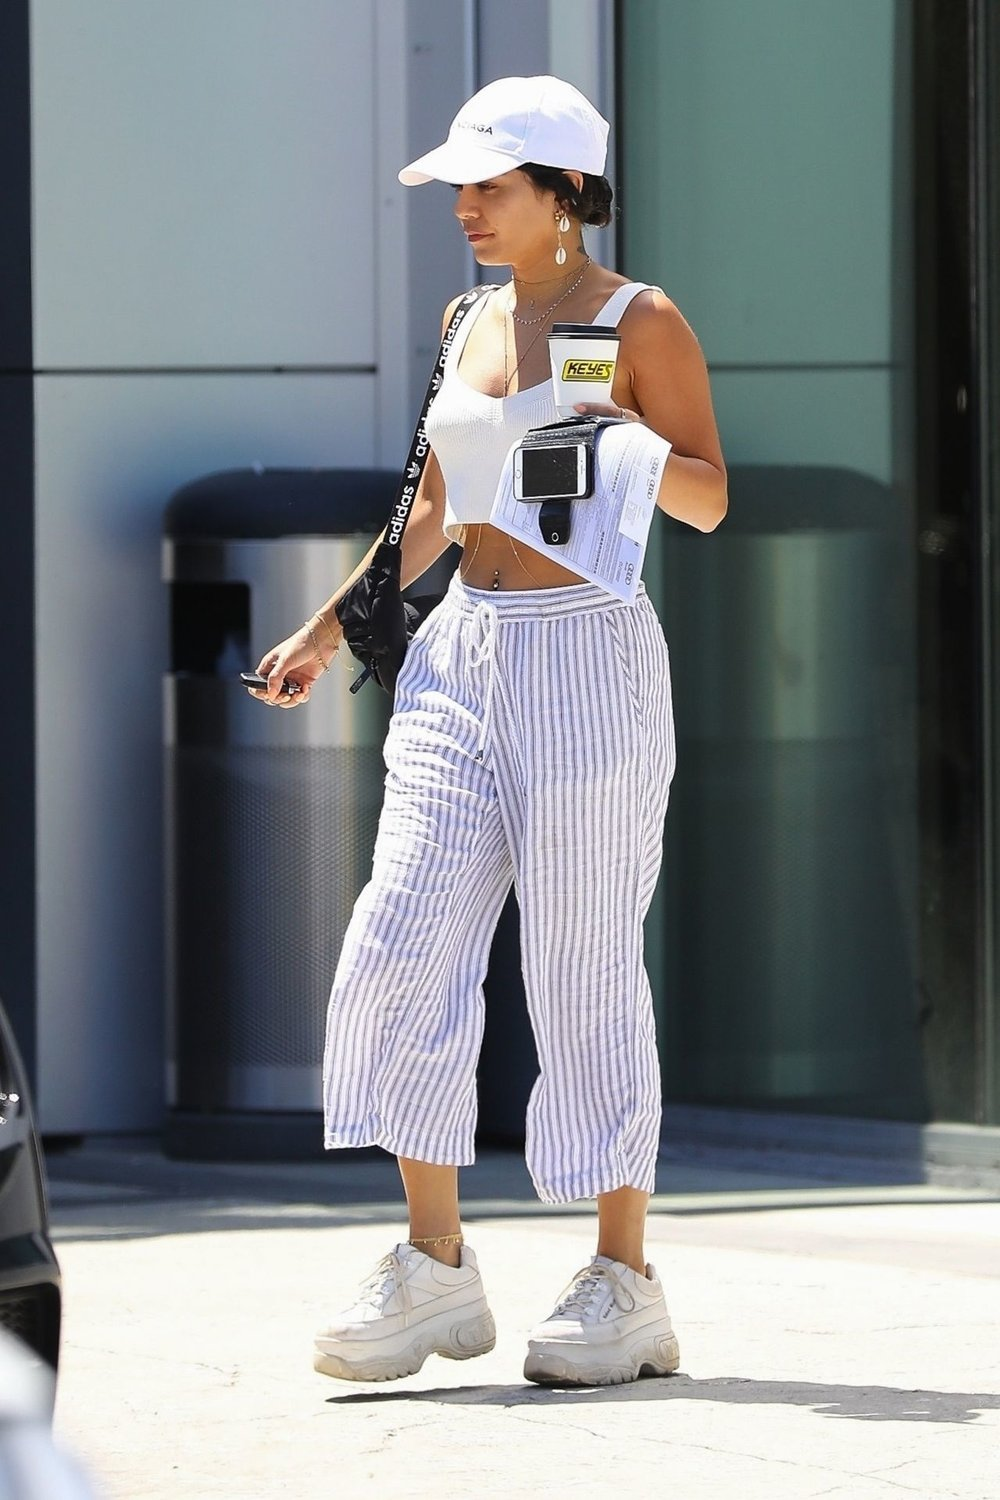 vanessa-hudgens-white-platform-sneakers-at-gas-station.jpg